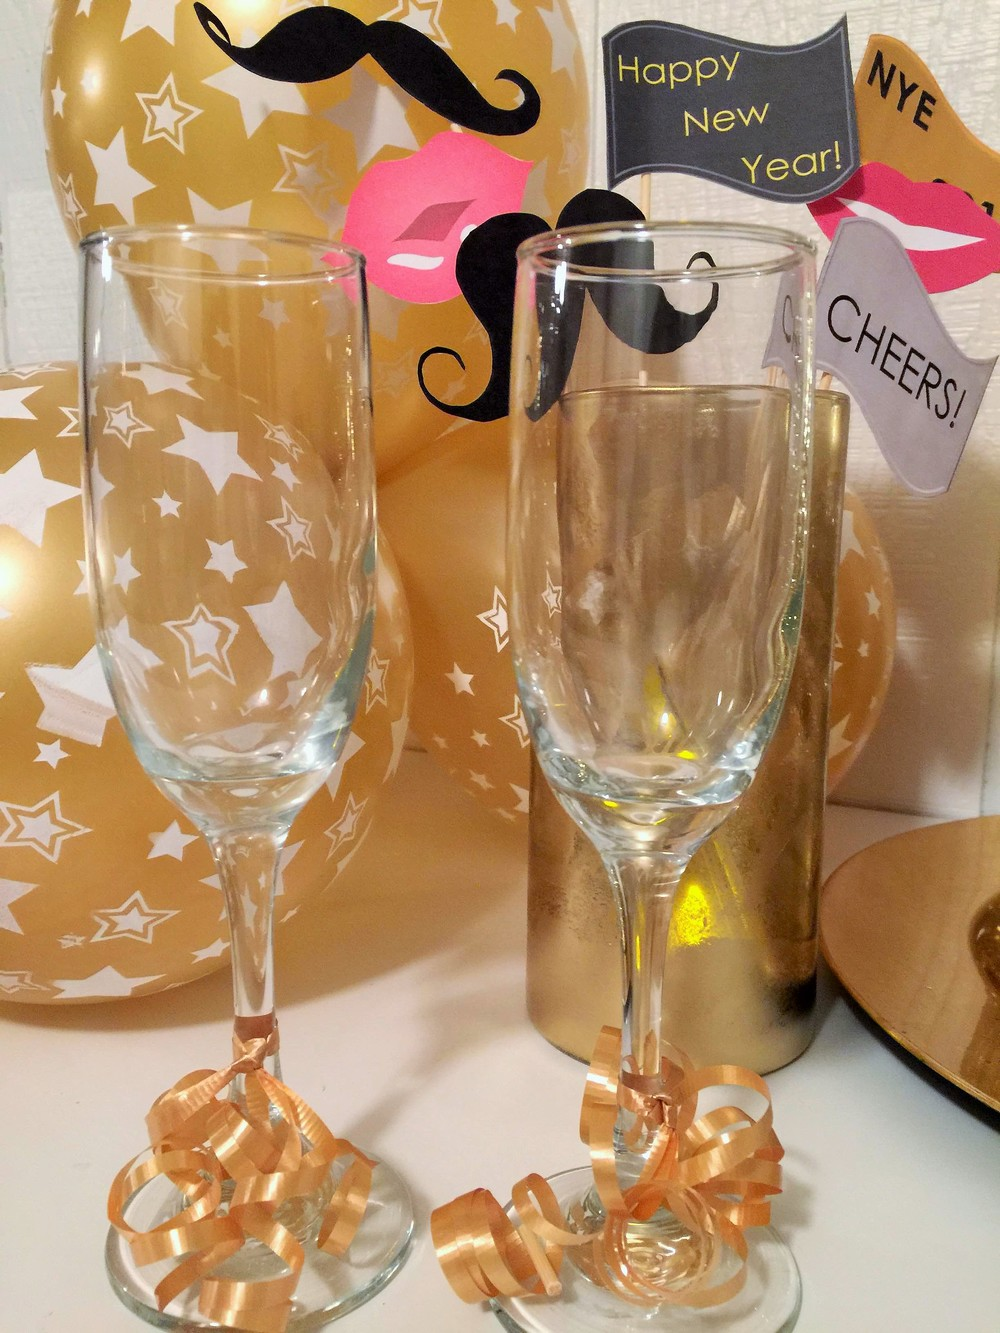 QUICK CHAMPAGNE GLASS DIY